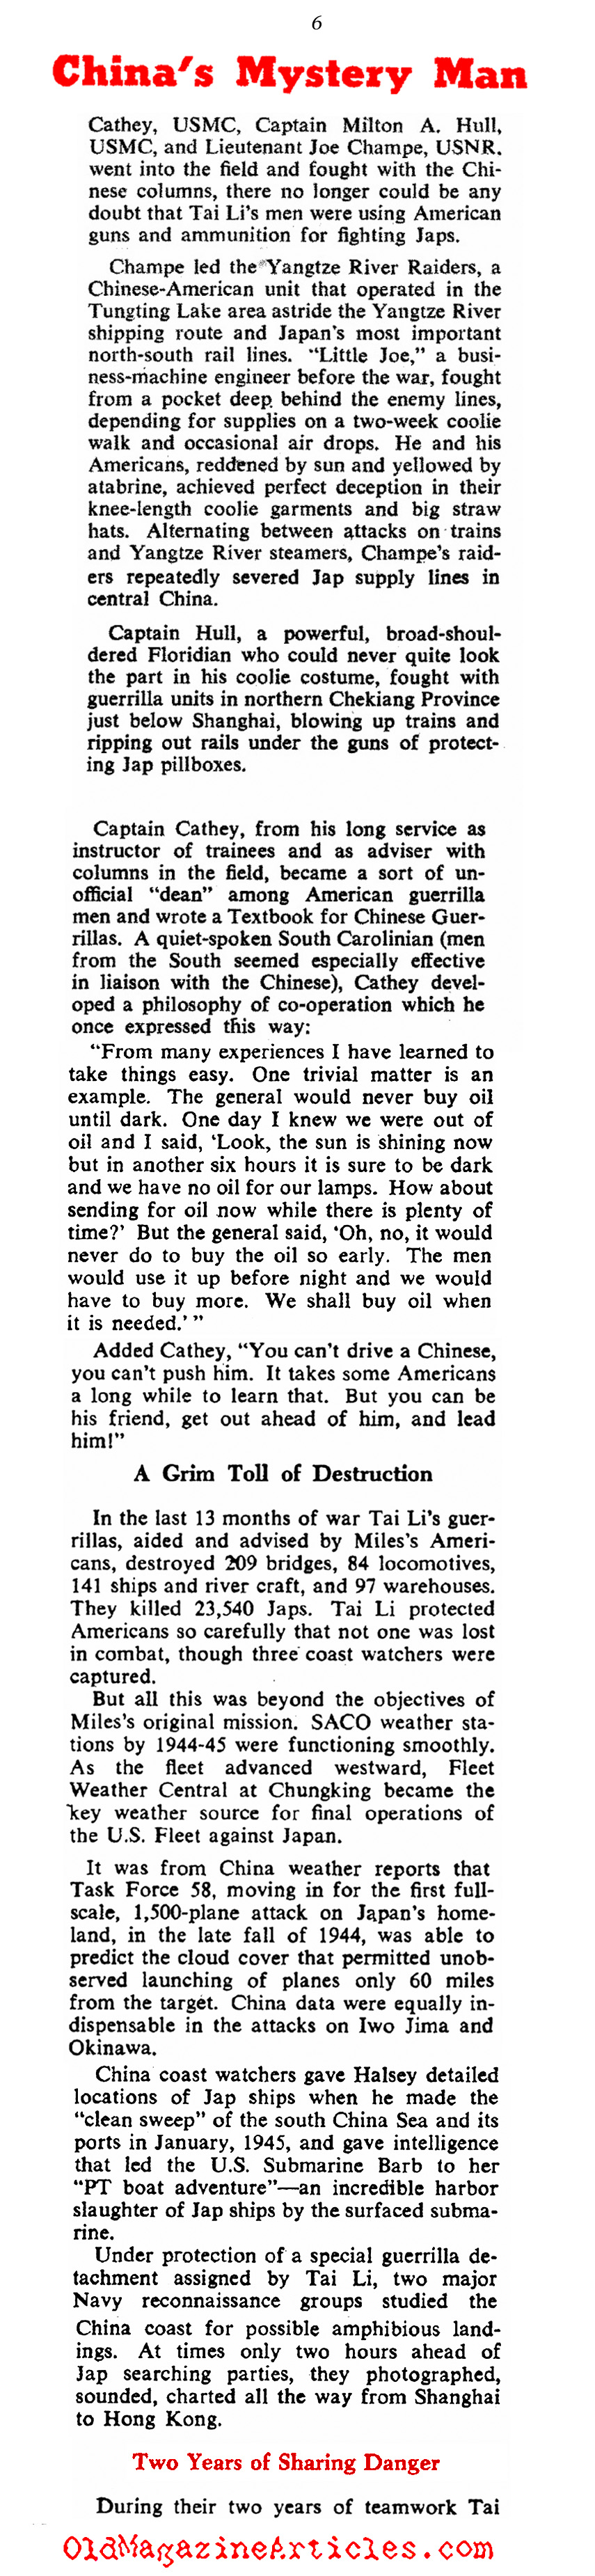 General Dai Li: ''The Himmler of The East (Collier's, 1946)